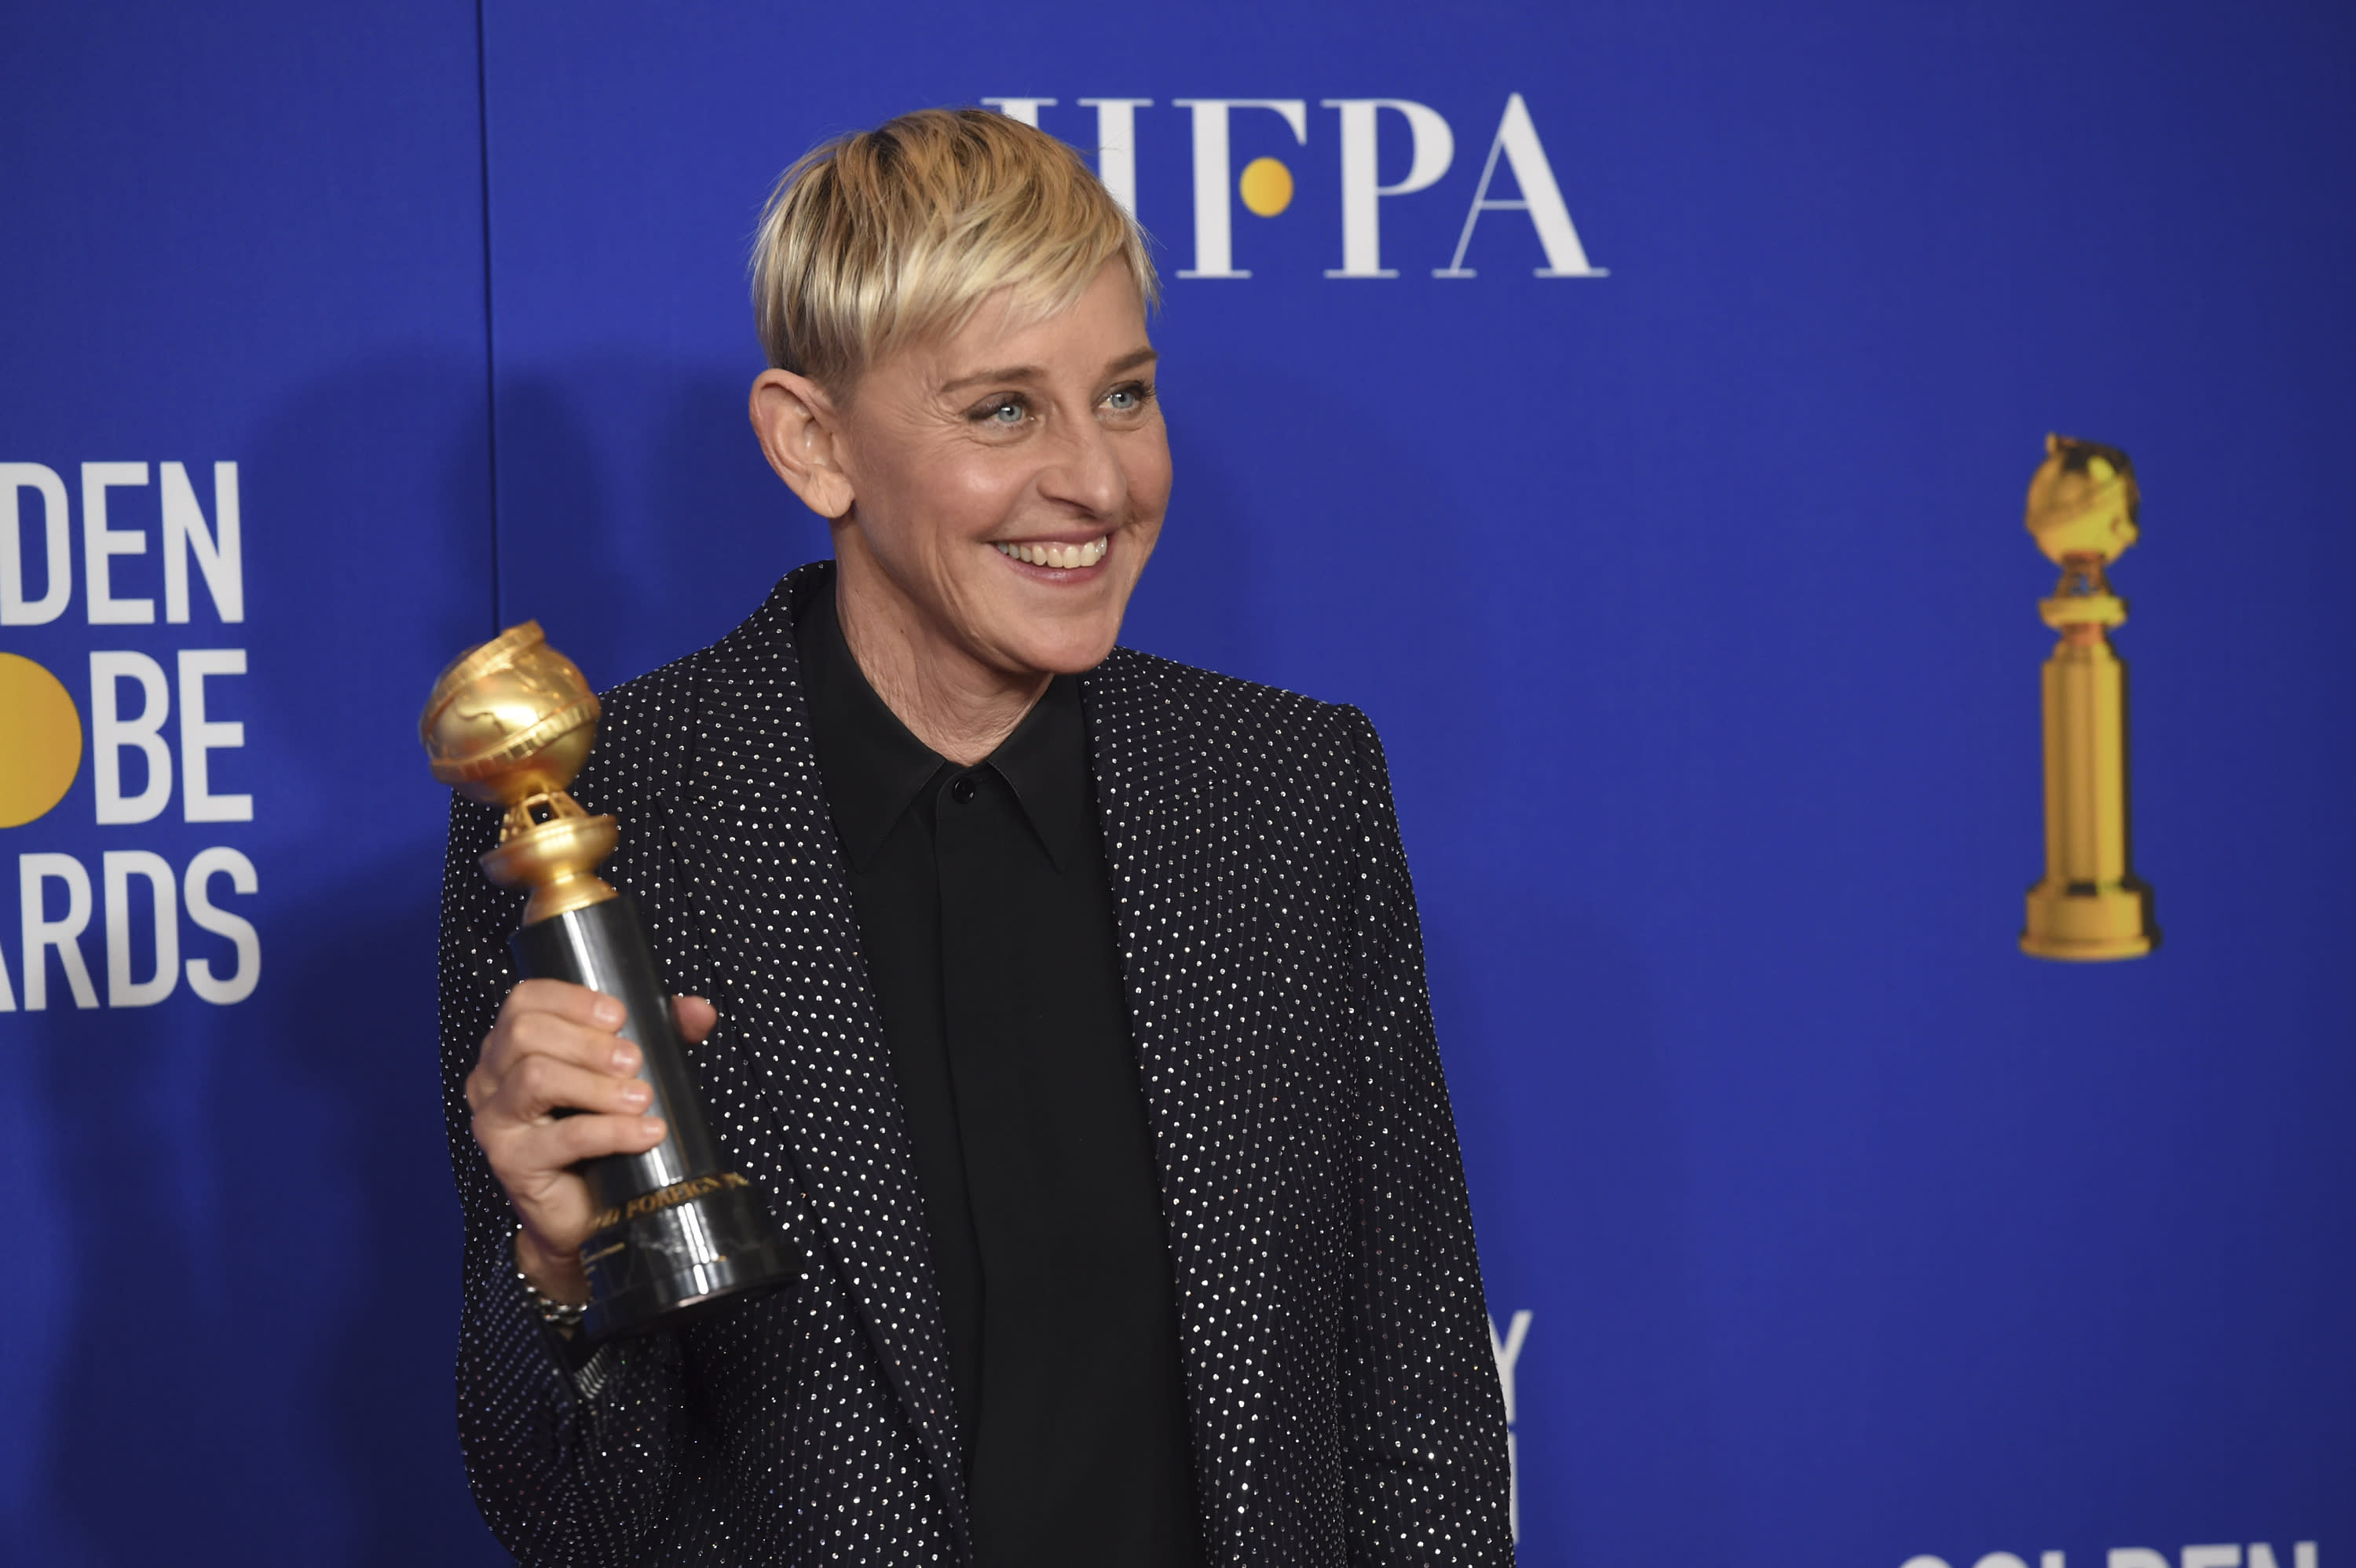 "FILE - In a Sunday, Jan. 5, 2020 file photo, Ellen DeGeneres, winner of the Carol Burnett award, poses in the press room at the 77th annual Golden Globe Awards at the Beverly Hilton Hotel, in Beverly Hills, Calif. ""The Masked Singer"" has been such a hit for Fox that the network is doubling down on hidden entertainers. Fox says it's joining with Ellen DeGeneres to produce ""The Masked Dancer,"" a celebrity competition show based on ""The Masked Singer"" and a segment that DeGeneres originated on her talk show. (AP Photo/Chris Pizzello, File)"